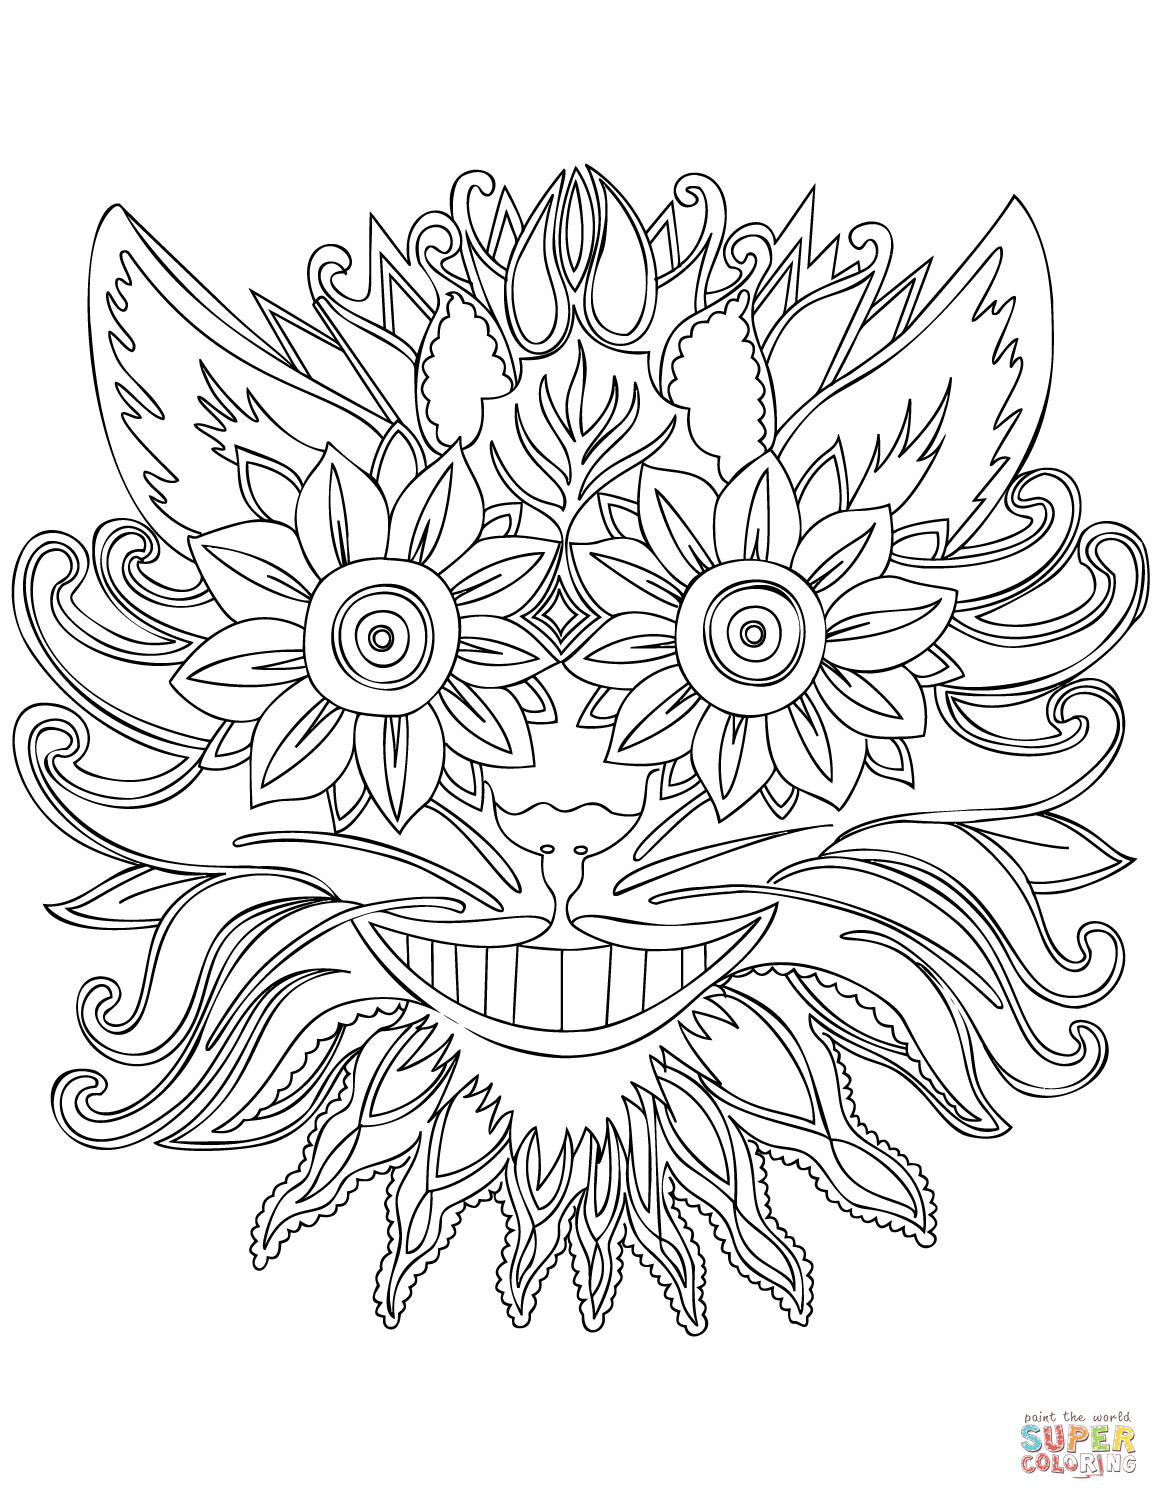 Cheshire Cat Zentangle Coloring Page